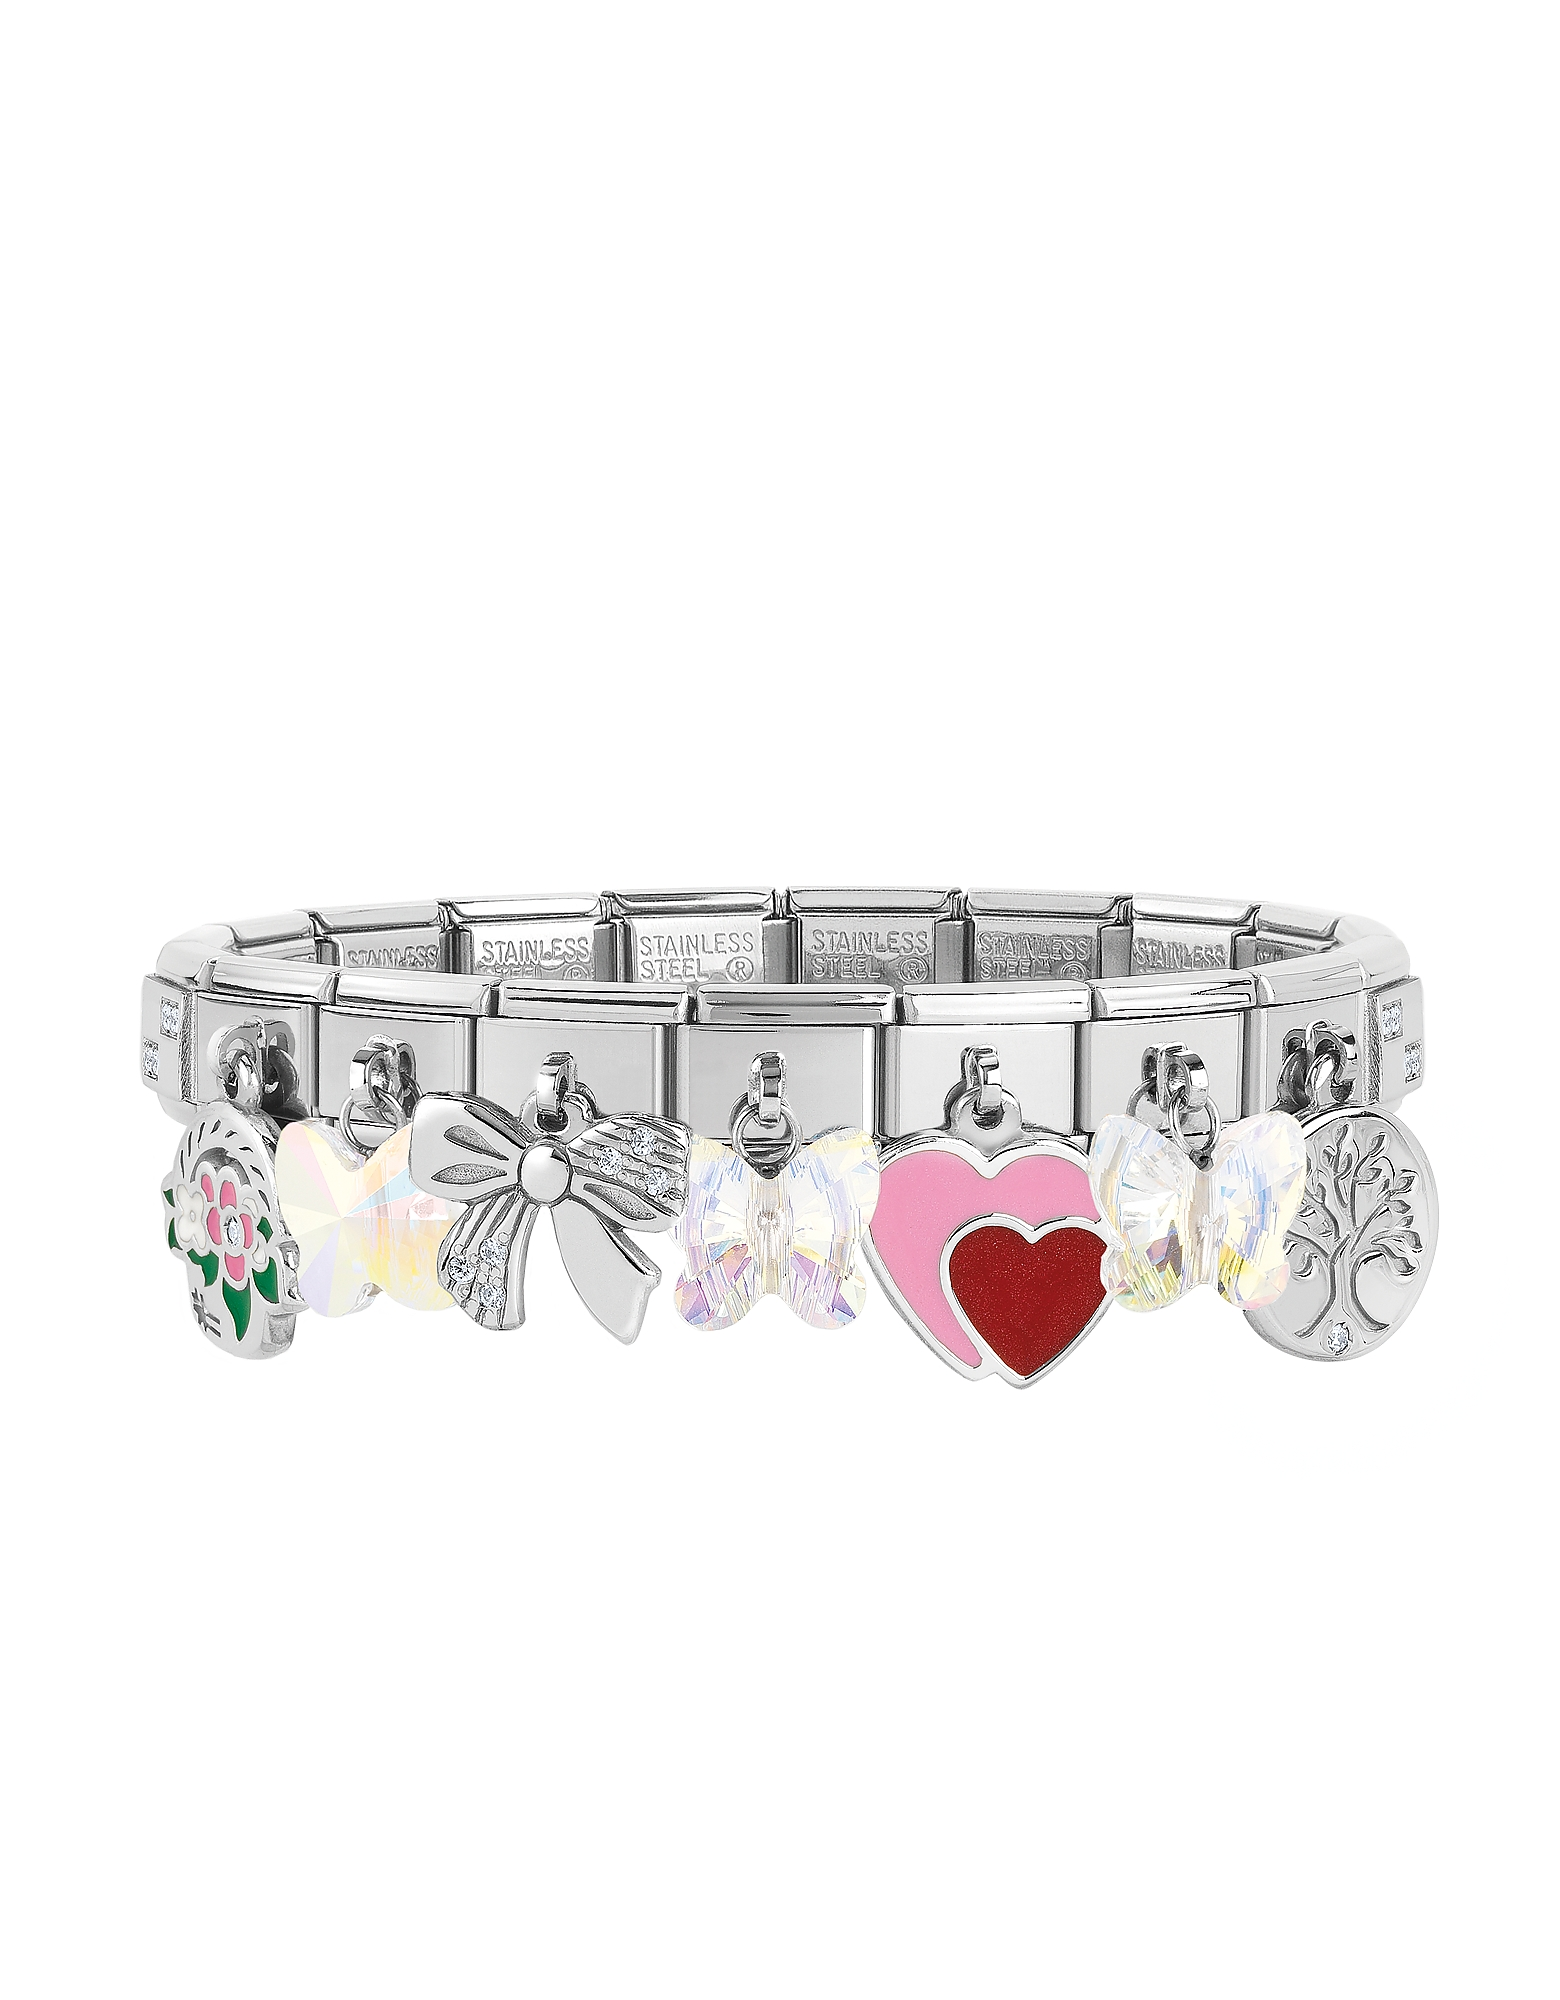 Nomination Bracelets, Classic Sweet Charms Sterling Silver and Stainless Steel Bracelet